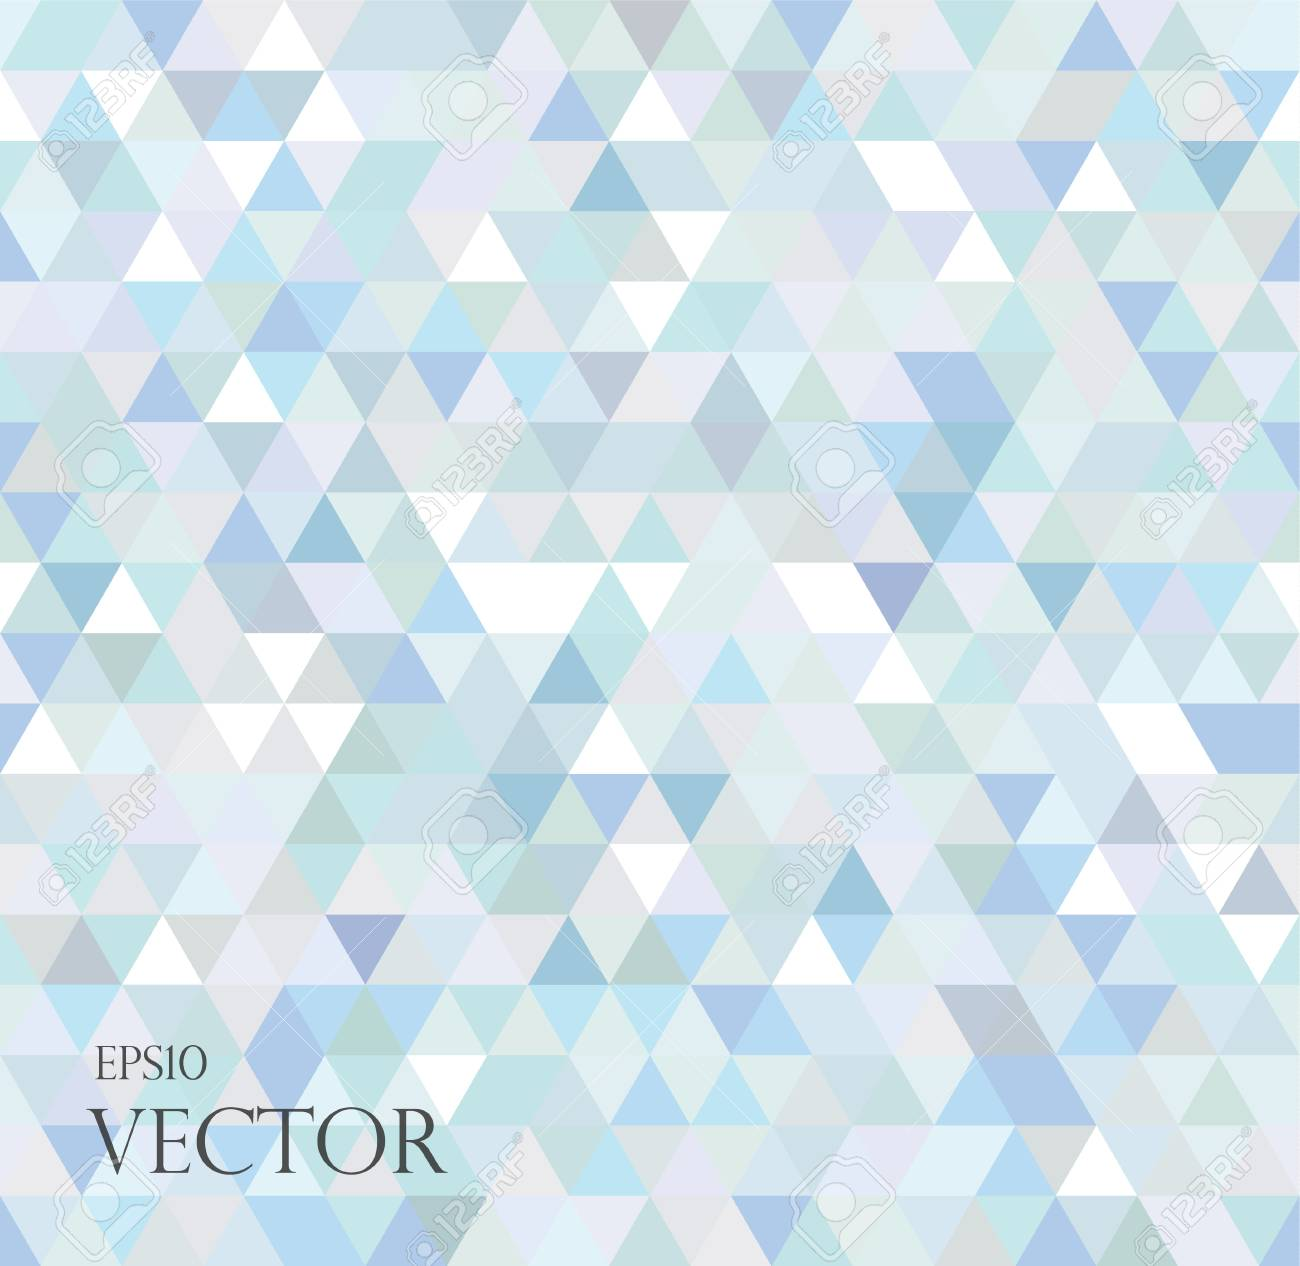 Abstract Geometric Background Consisting Of Light Blue Triangles